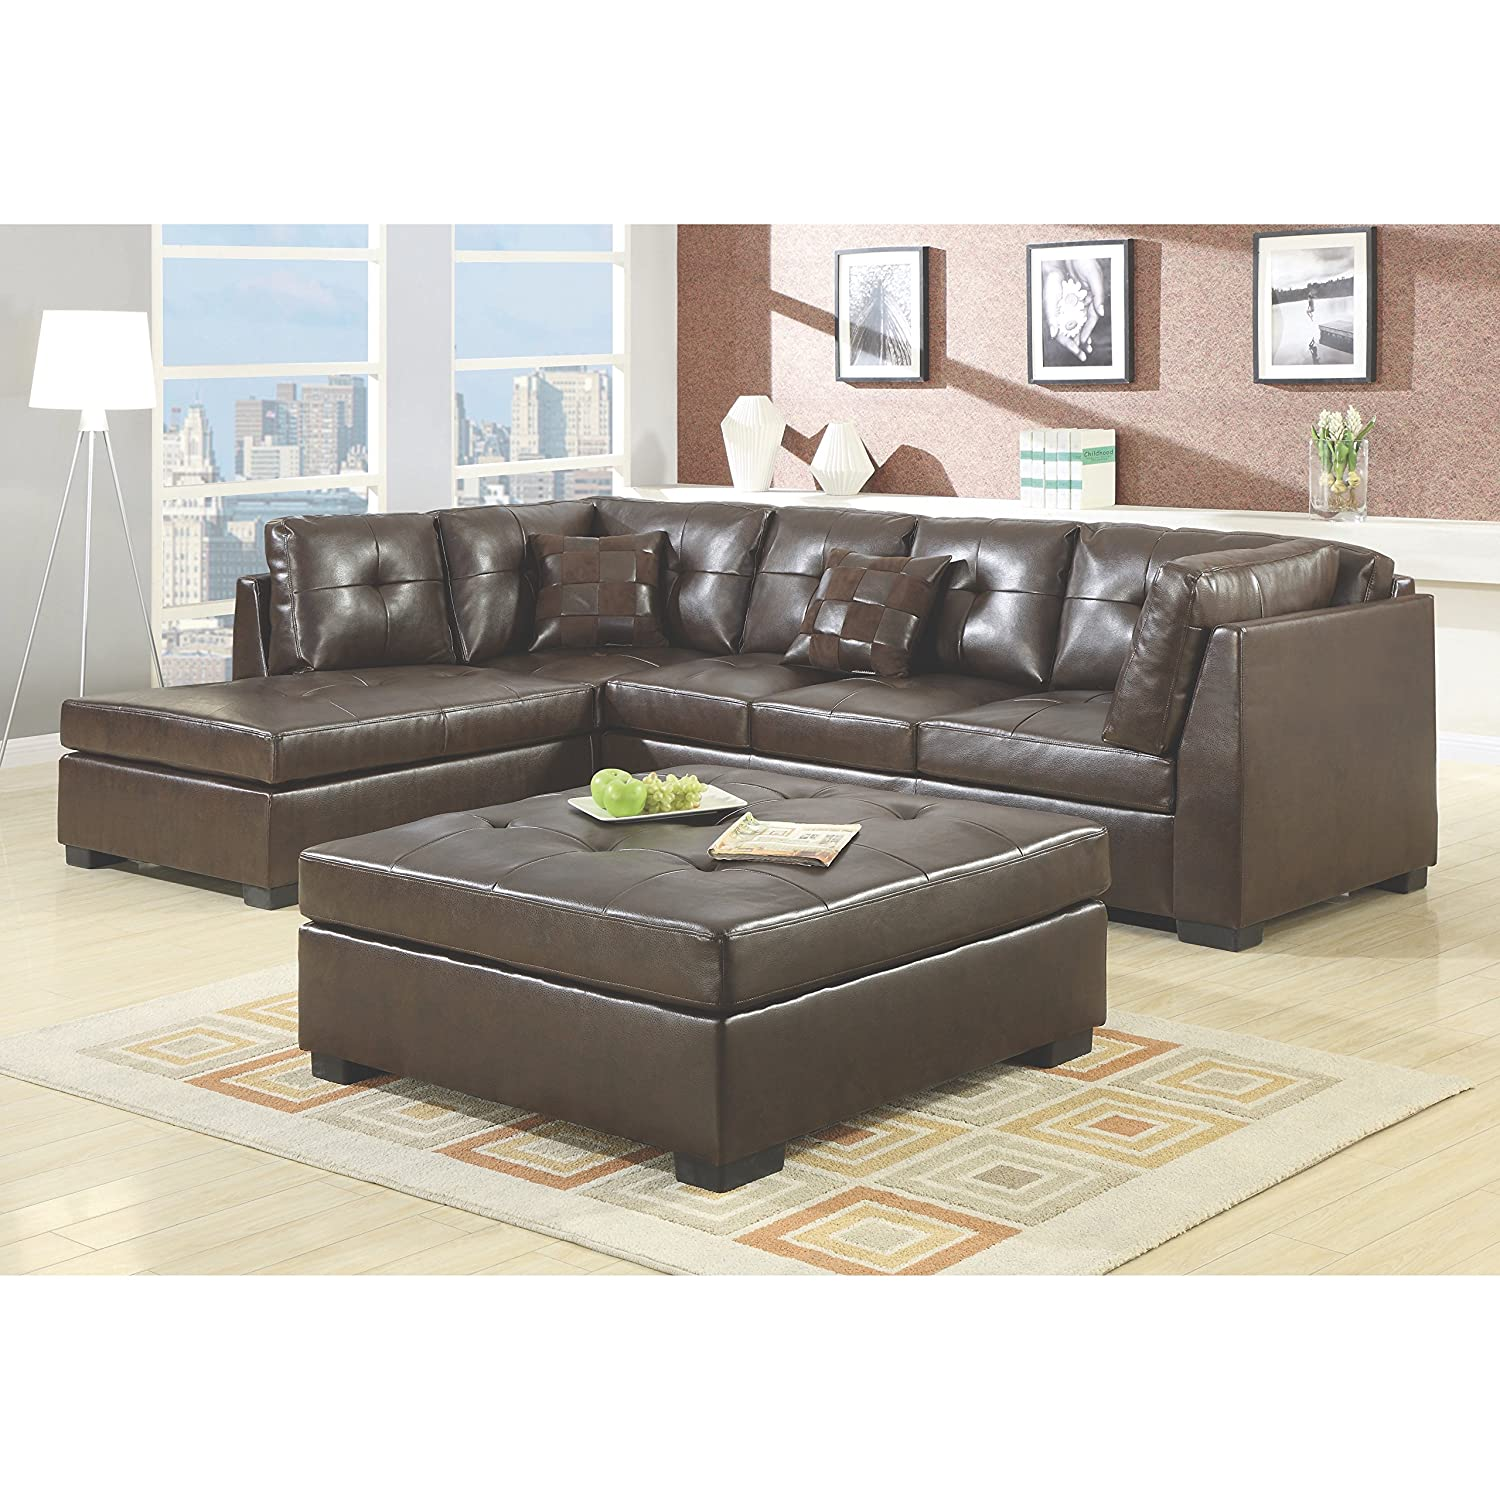 Amazoncom Coaster Home Furnishings 500686 Casual Sectional Sofa